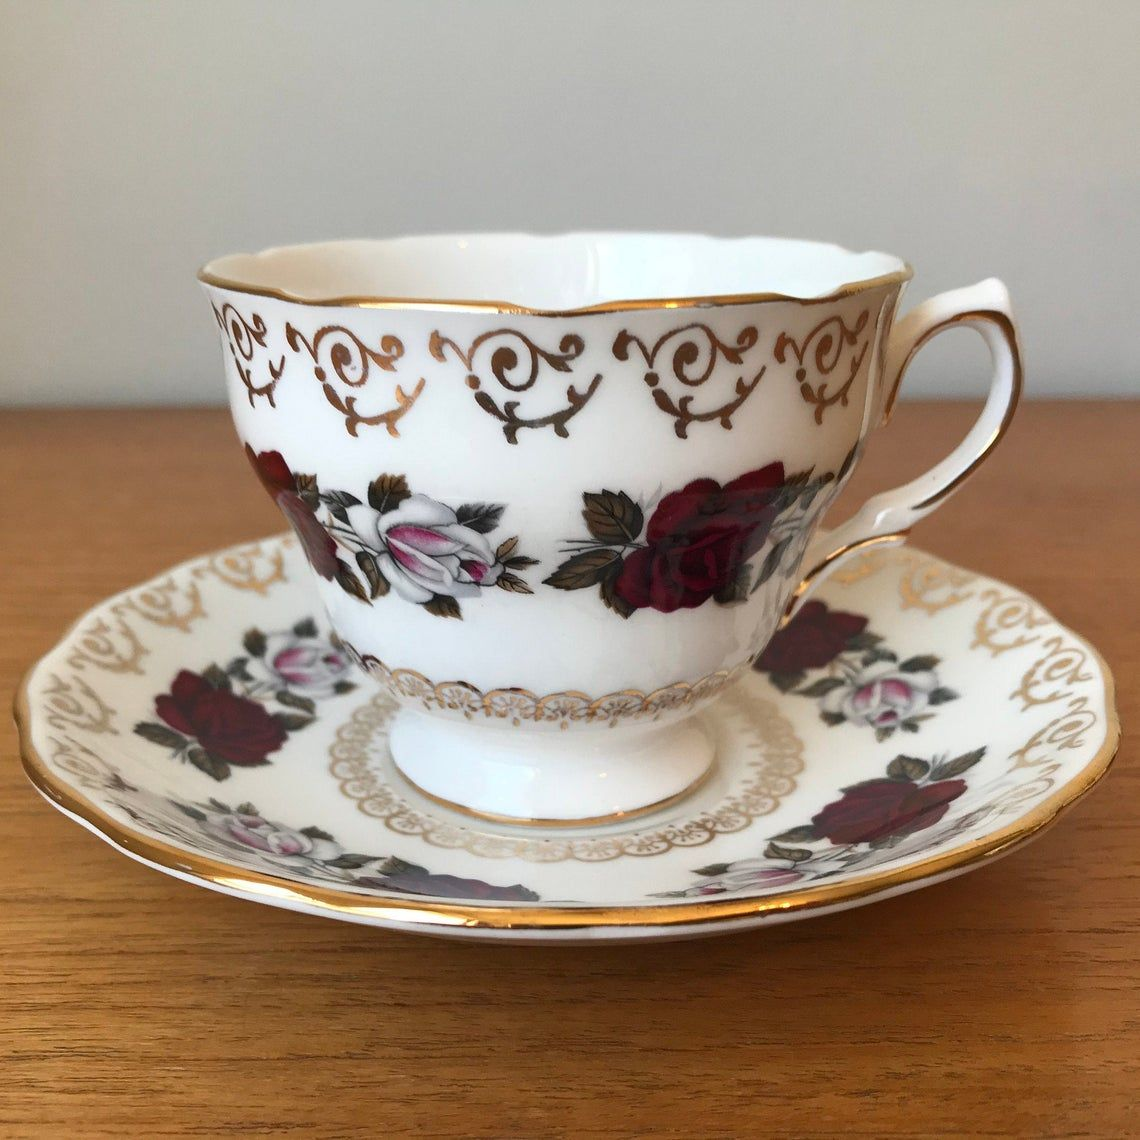 Colclough Red Rose Teacup and Saucer, White Rose, Gold Filigree, Vintage Tea Cup and Saucer, English Bone China